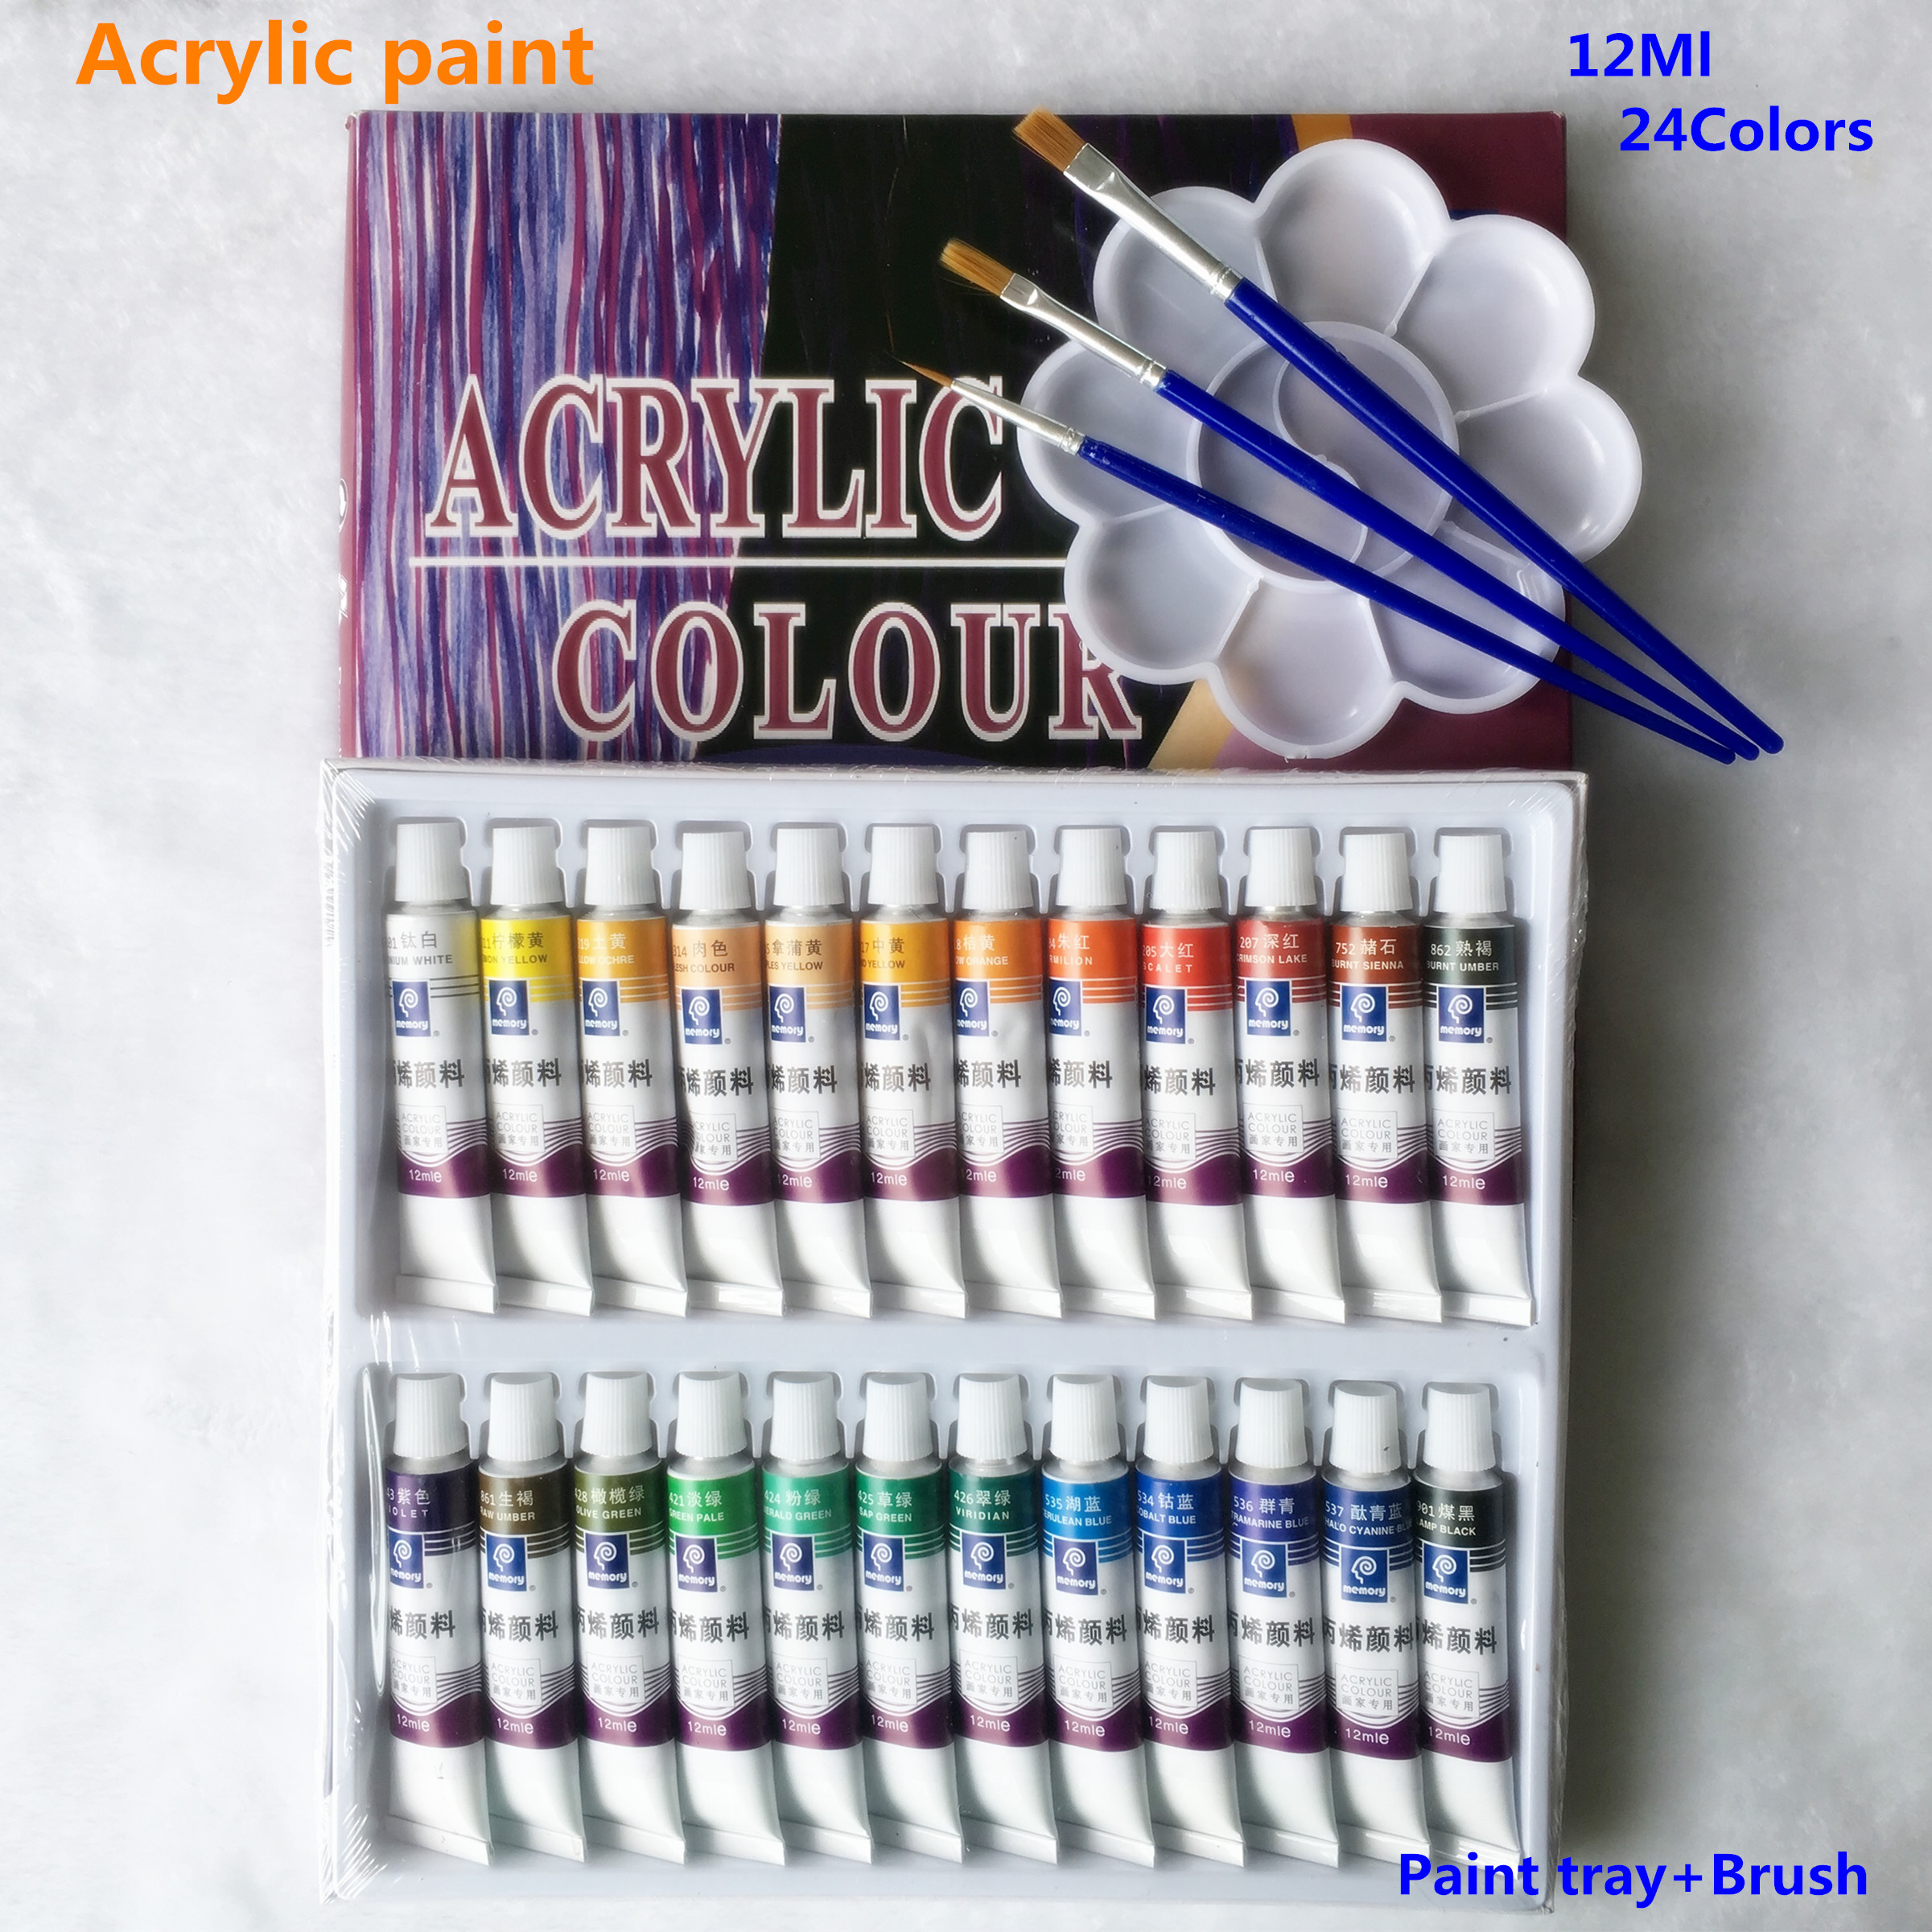 24pcs/set  Paint Acrylic Paint Tube Set Nail Art Painting Drawing Tool For Artist Kids DIY Design  Free For Brush And Paint Tray 24 colors 12ml acrylic paint set color nail glass art painting paint for fabric drawing tools